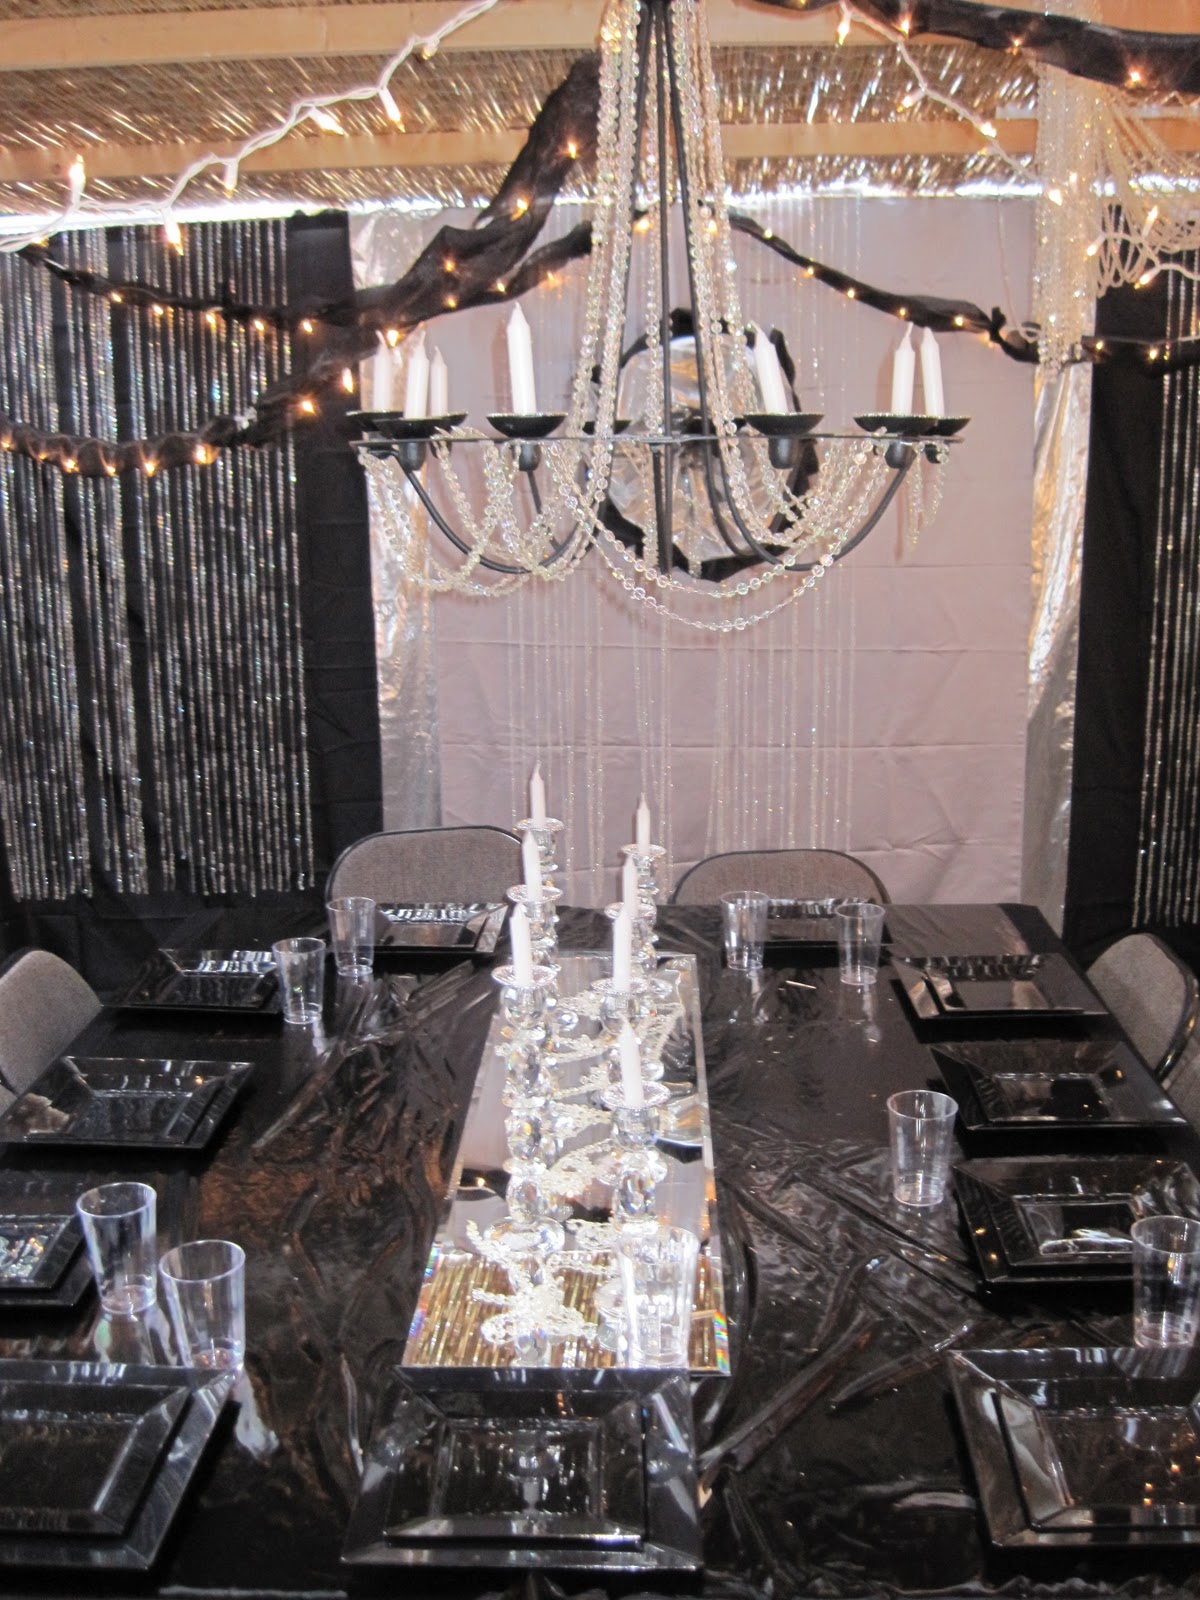 TABLE SETTING INSPIRATIONS PART II: IDEAS FOR DECORATING YOUR SUKKAH -